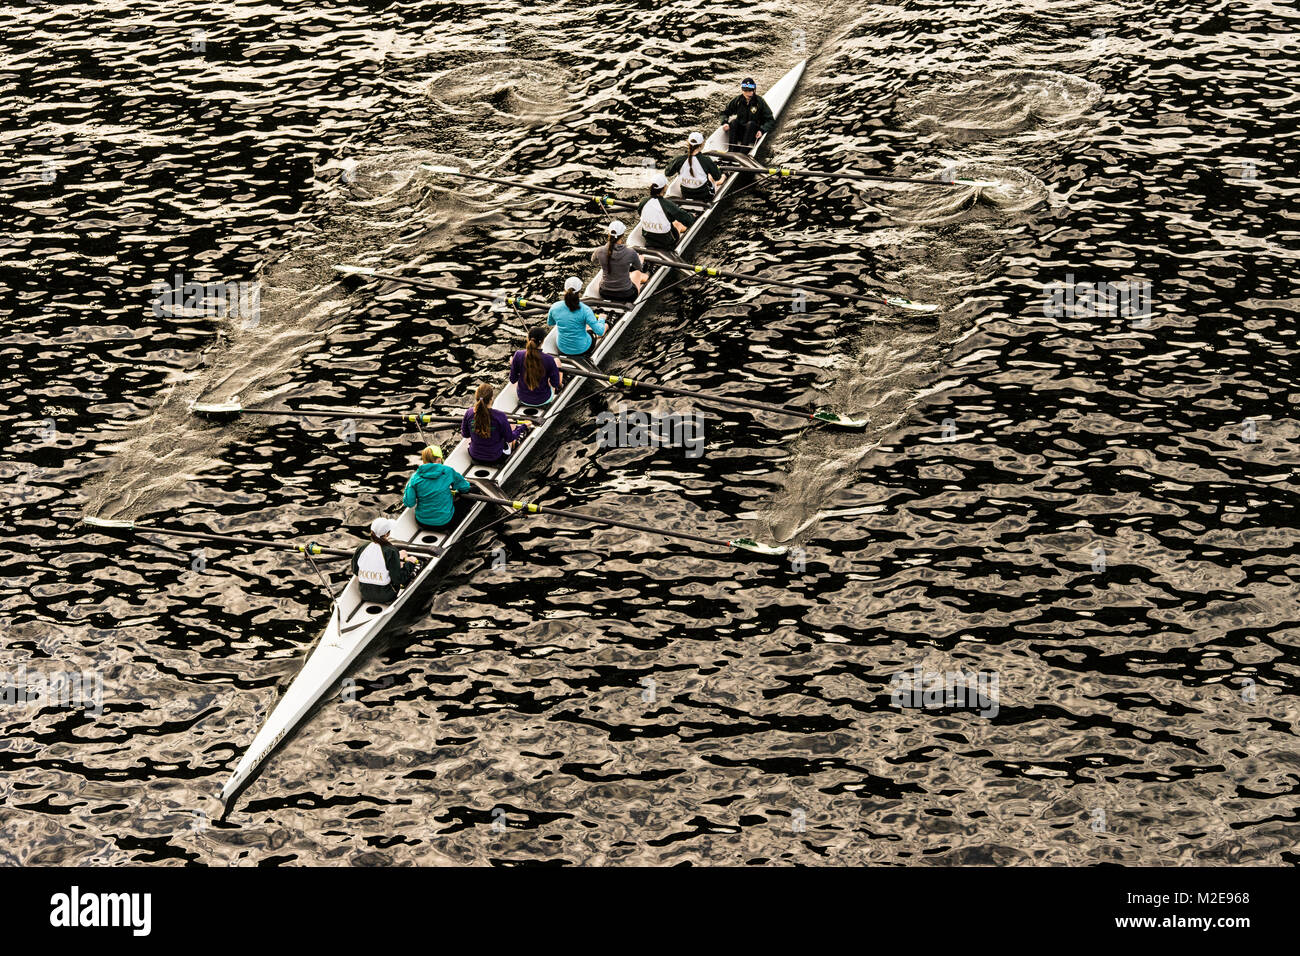 United States, Washington, Seattle, Rowing schells on Lake Union with woman at the oars - Stock Image